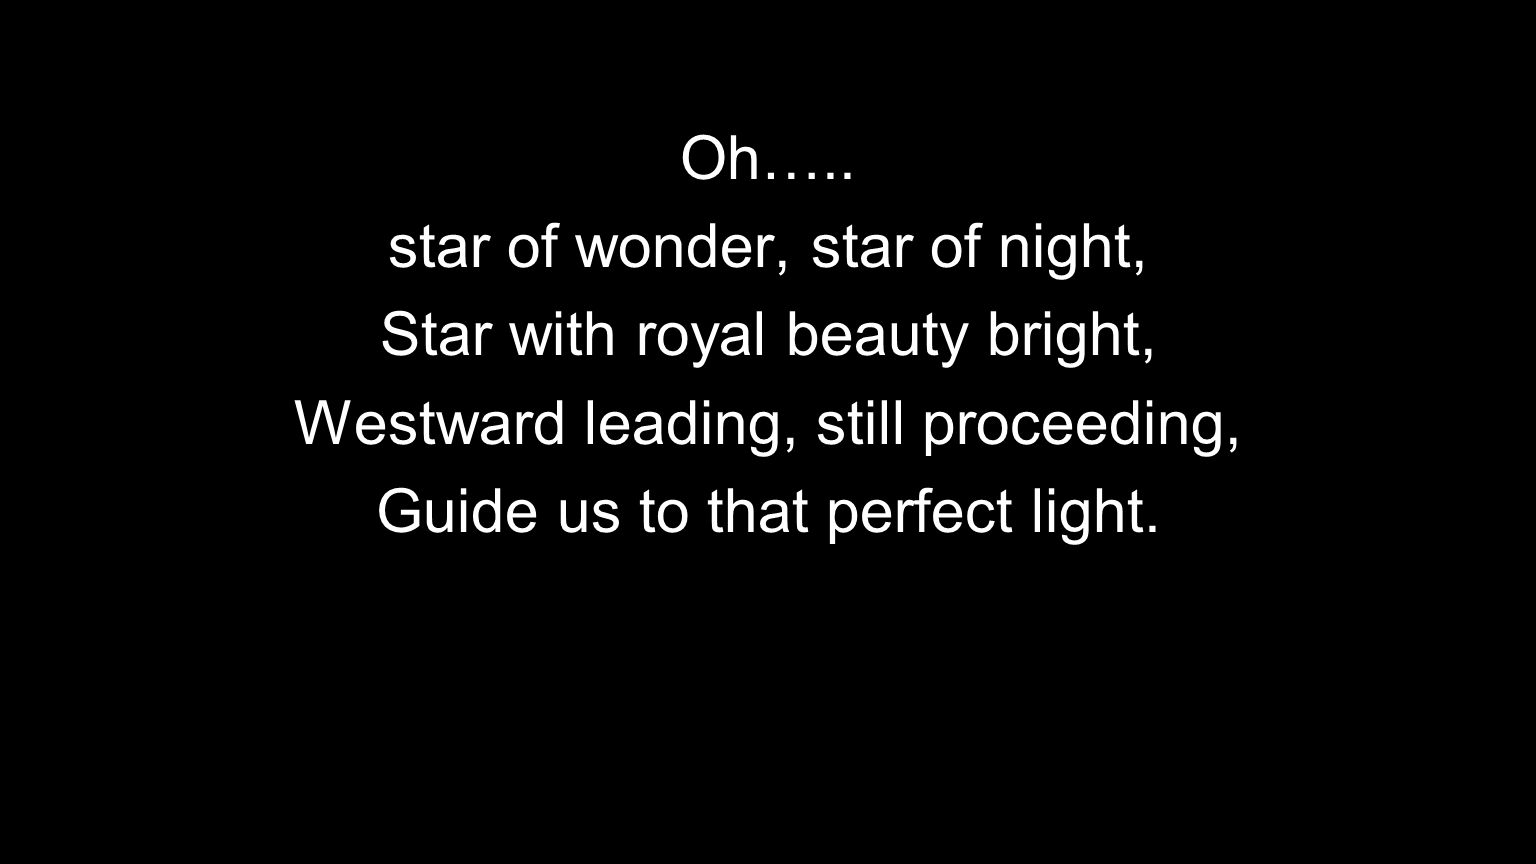 star of wonder, star of night, Star with royal beauty bright,